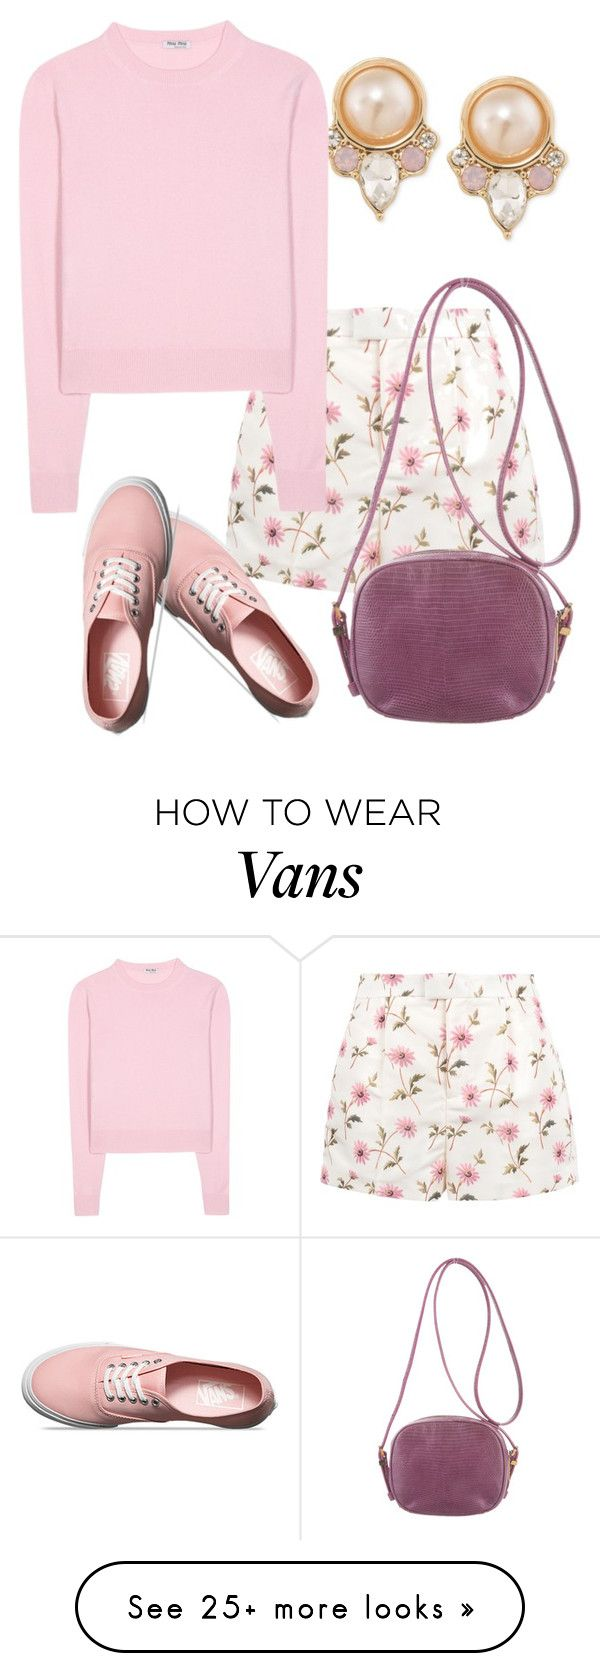 """Untitled #901"" by srlangley on Polyvore featuring Carolee, RED Valentino, Miu Miu, Vans and The Row"